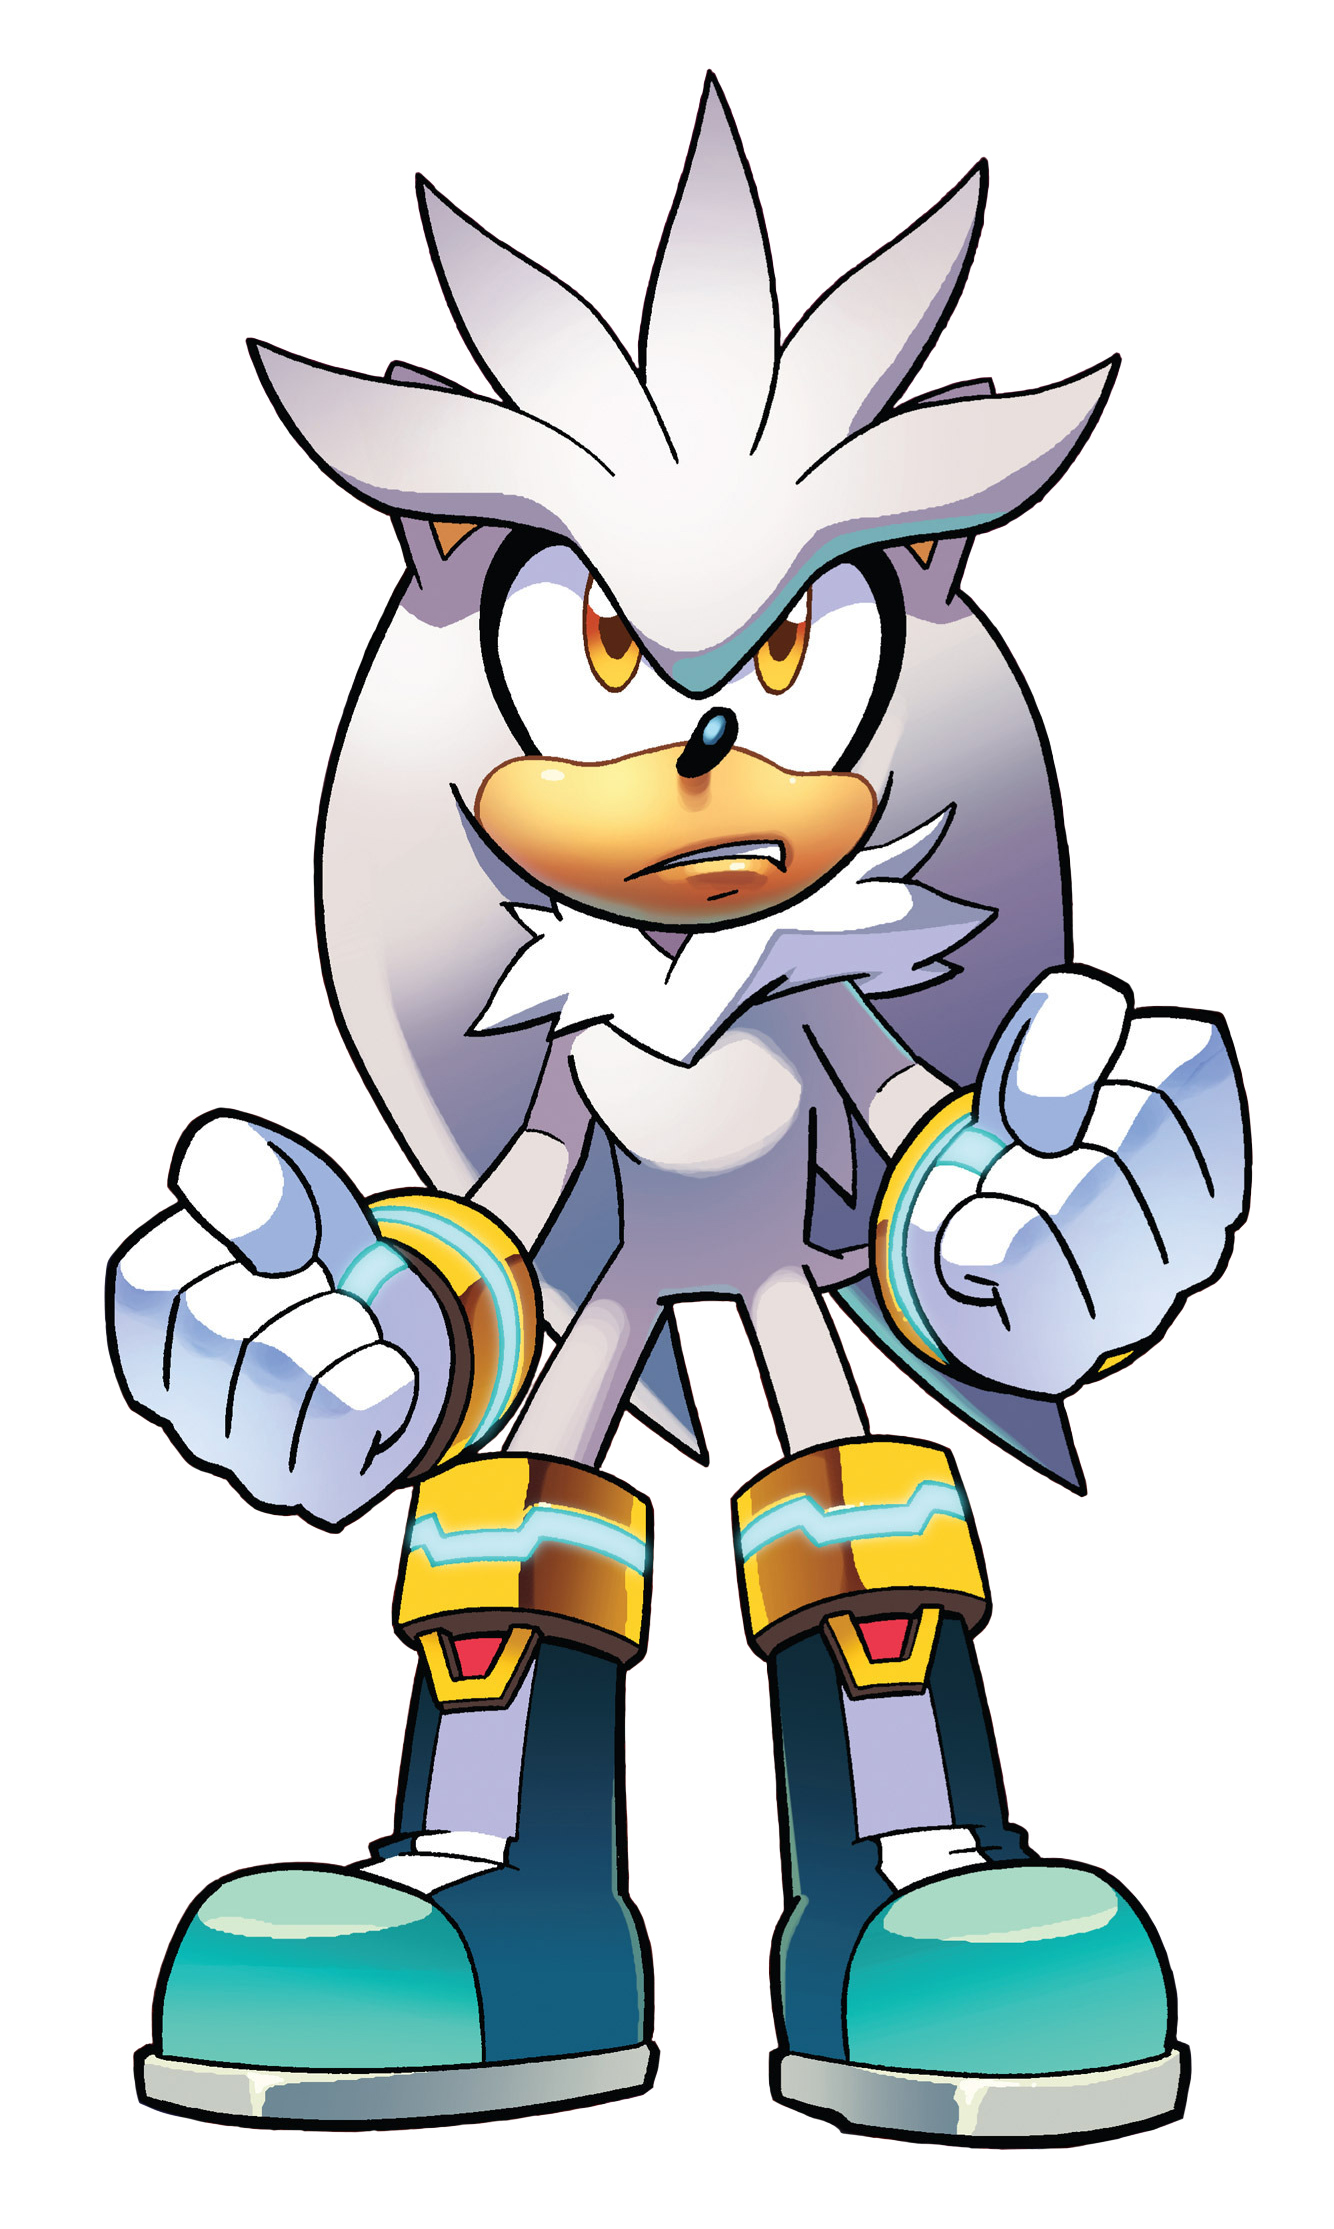 Silver The Hedgehog Mobius Encyclopaedia Fandom